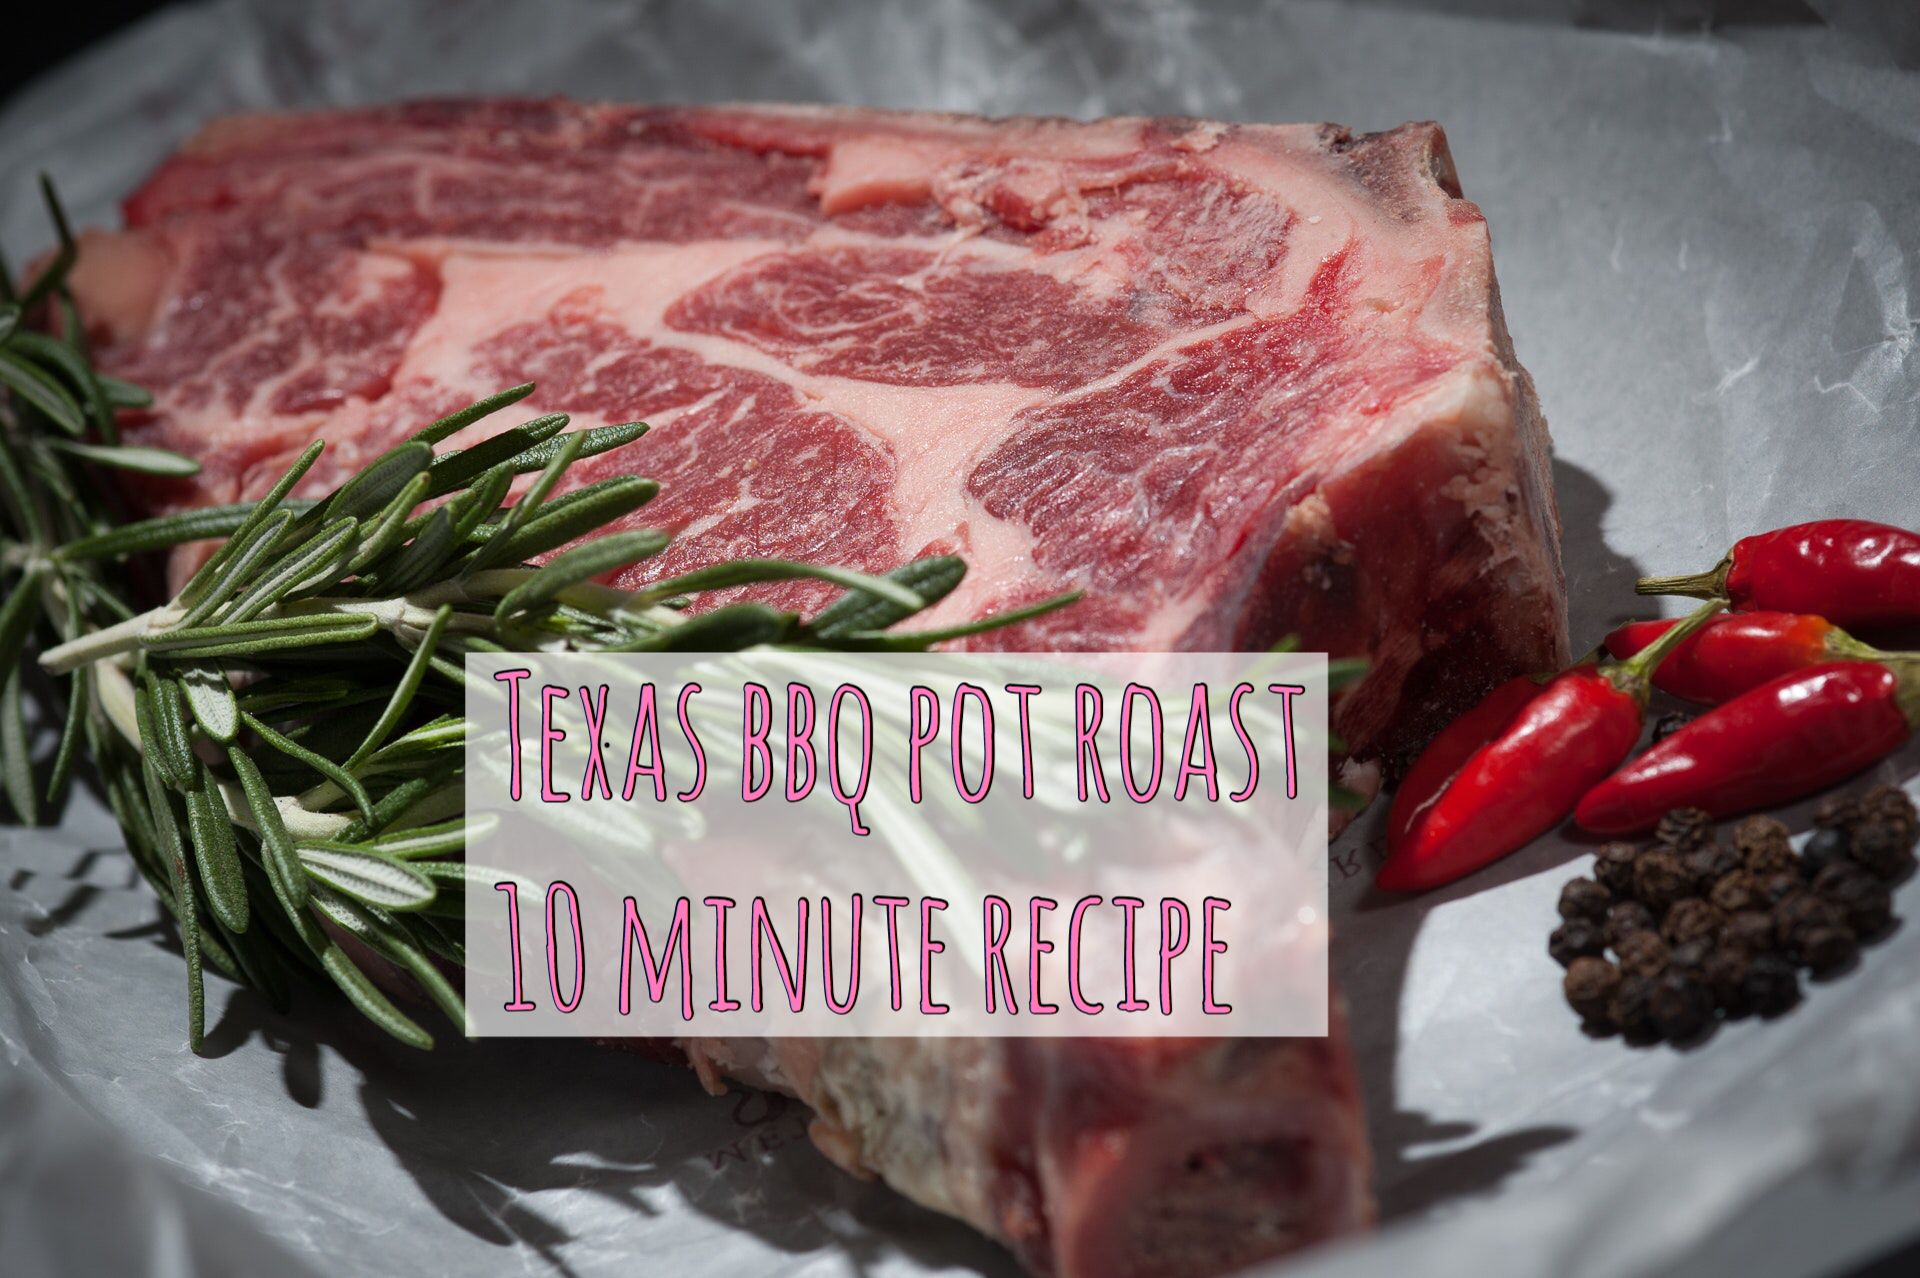 Texas Bbq Pot Roast Slow Cooker Healthy Soup Recipes Soup Recipes Food Recipes